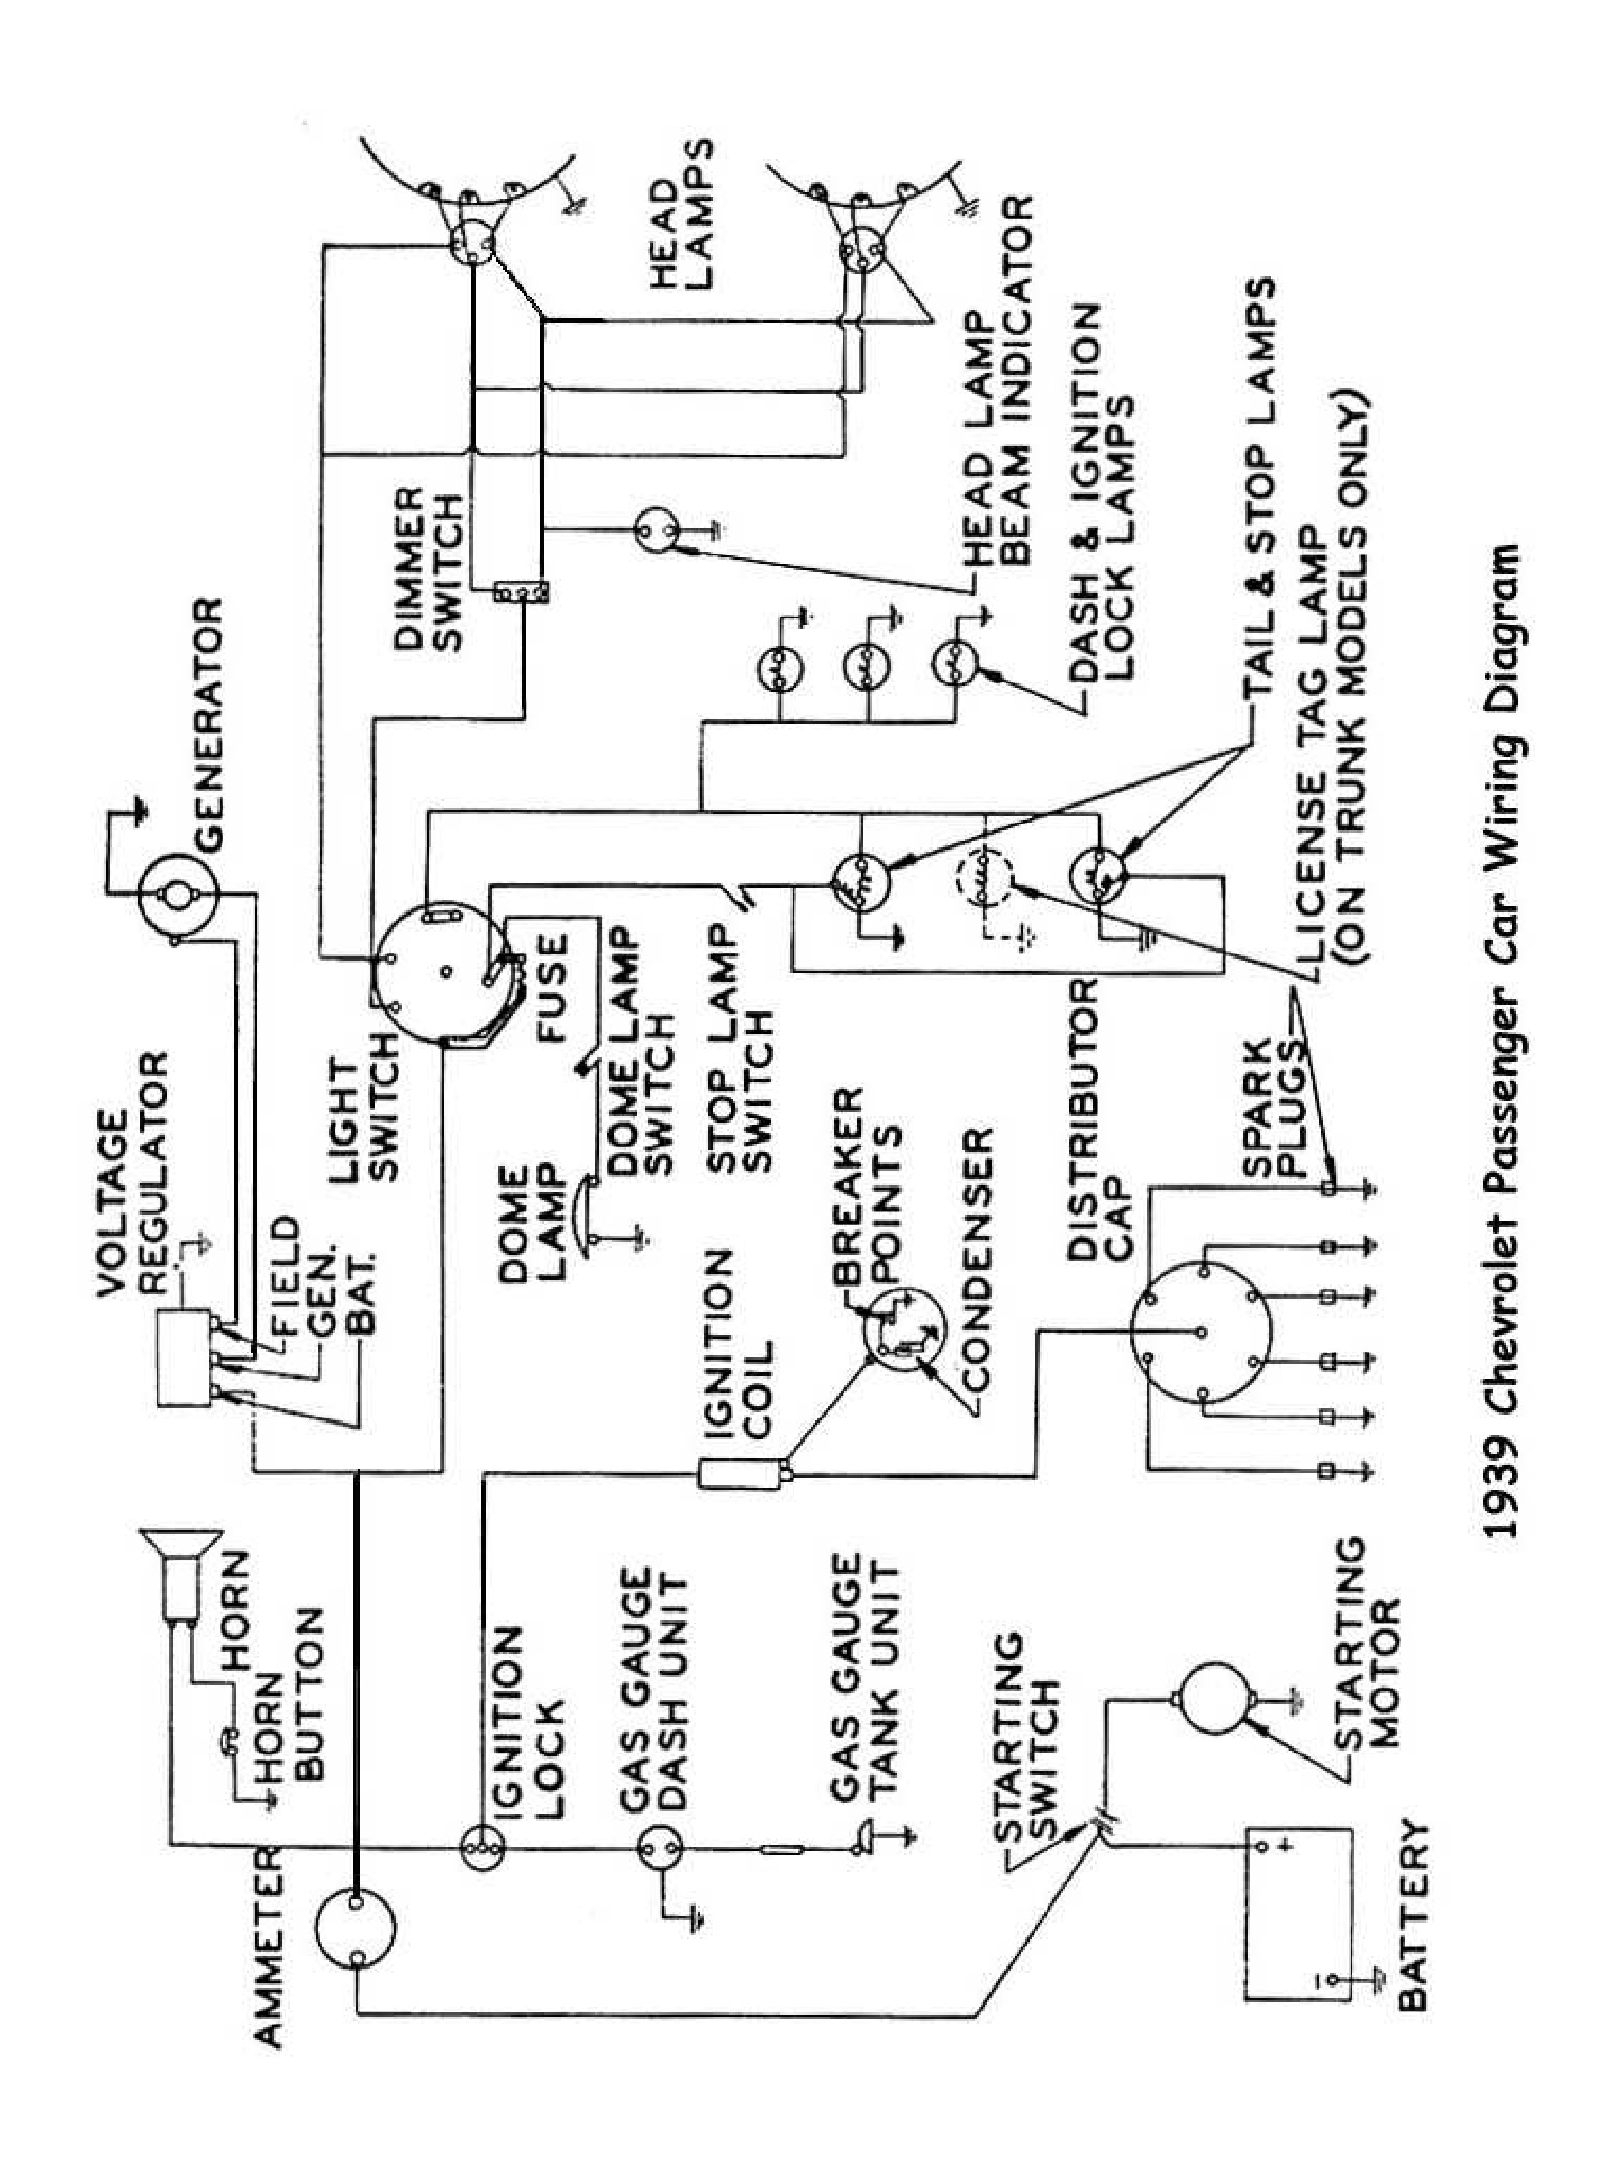 Zone Valve Wiring Connections At The Thermostat